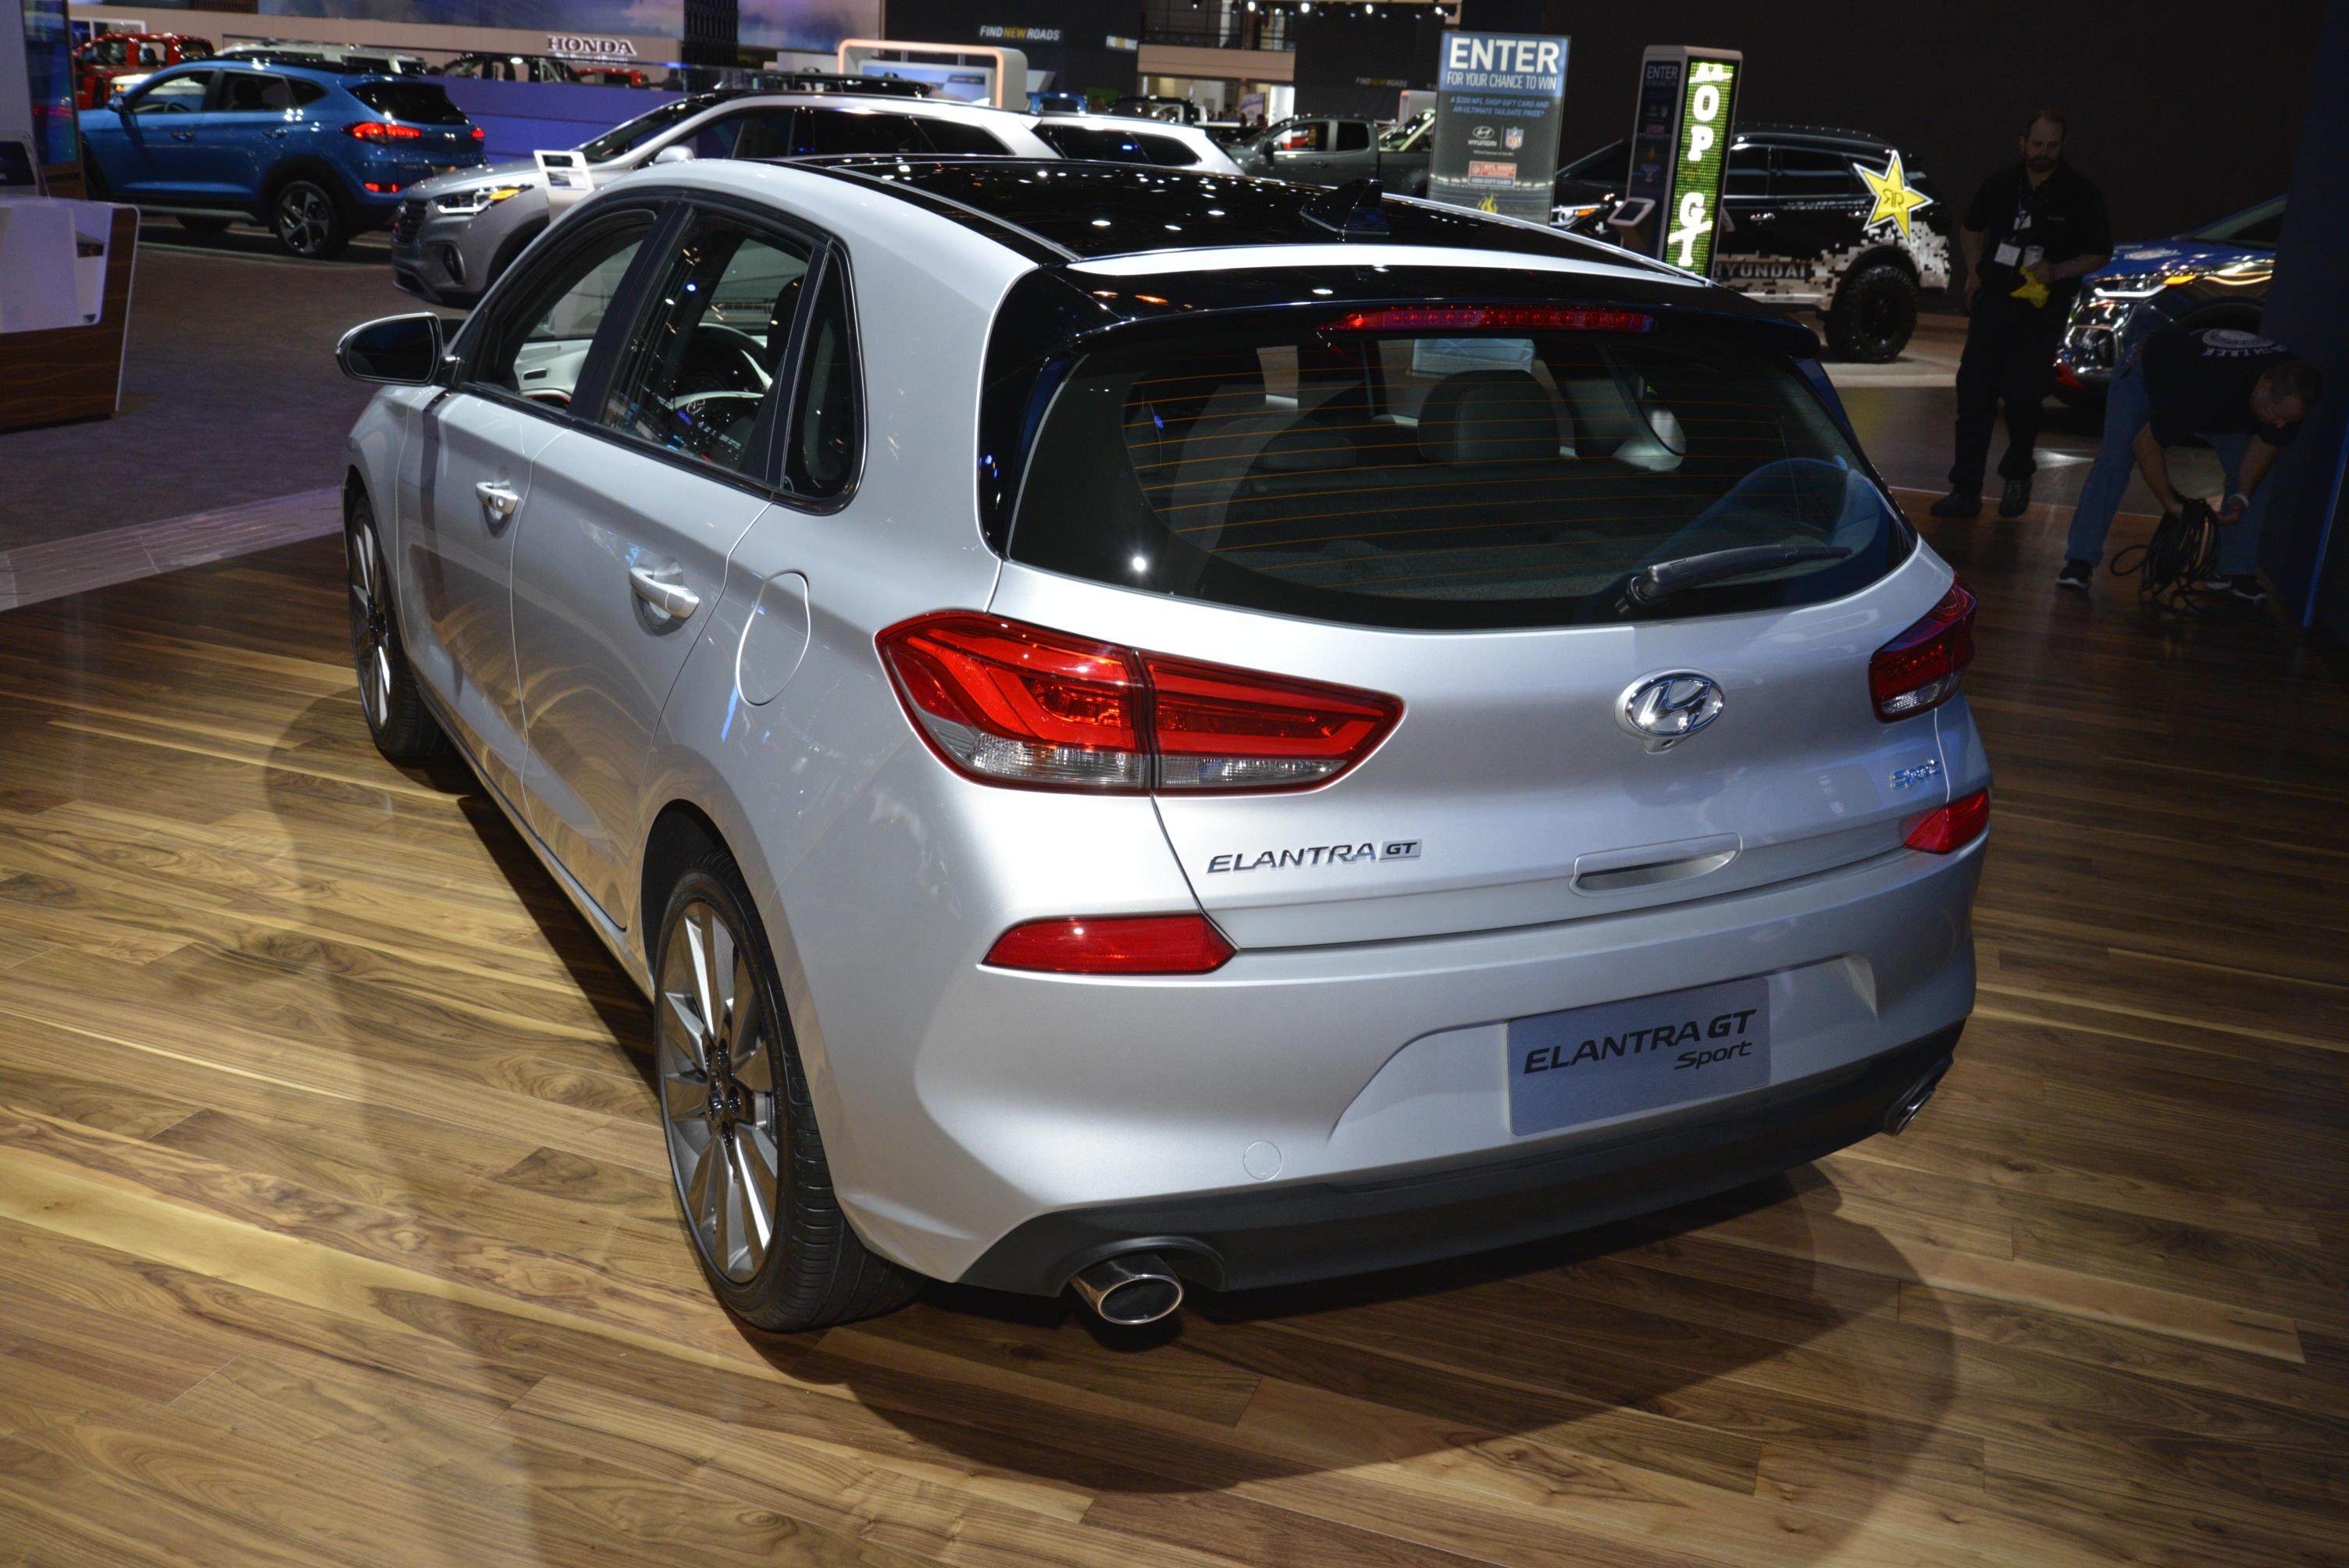 2018 hyundai elantra gt priced appropriately standard features are aplenty autoevolution. Black Bedroom Furniture Sets. Home Design Ideas